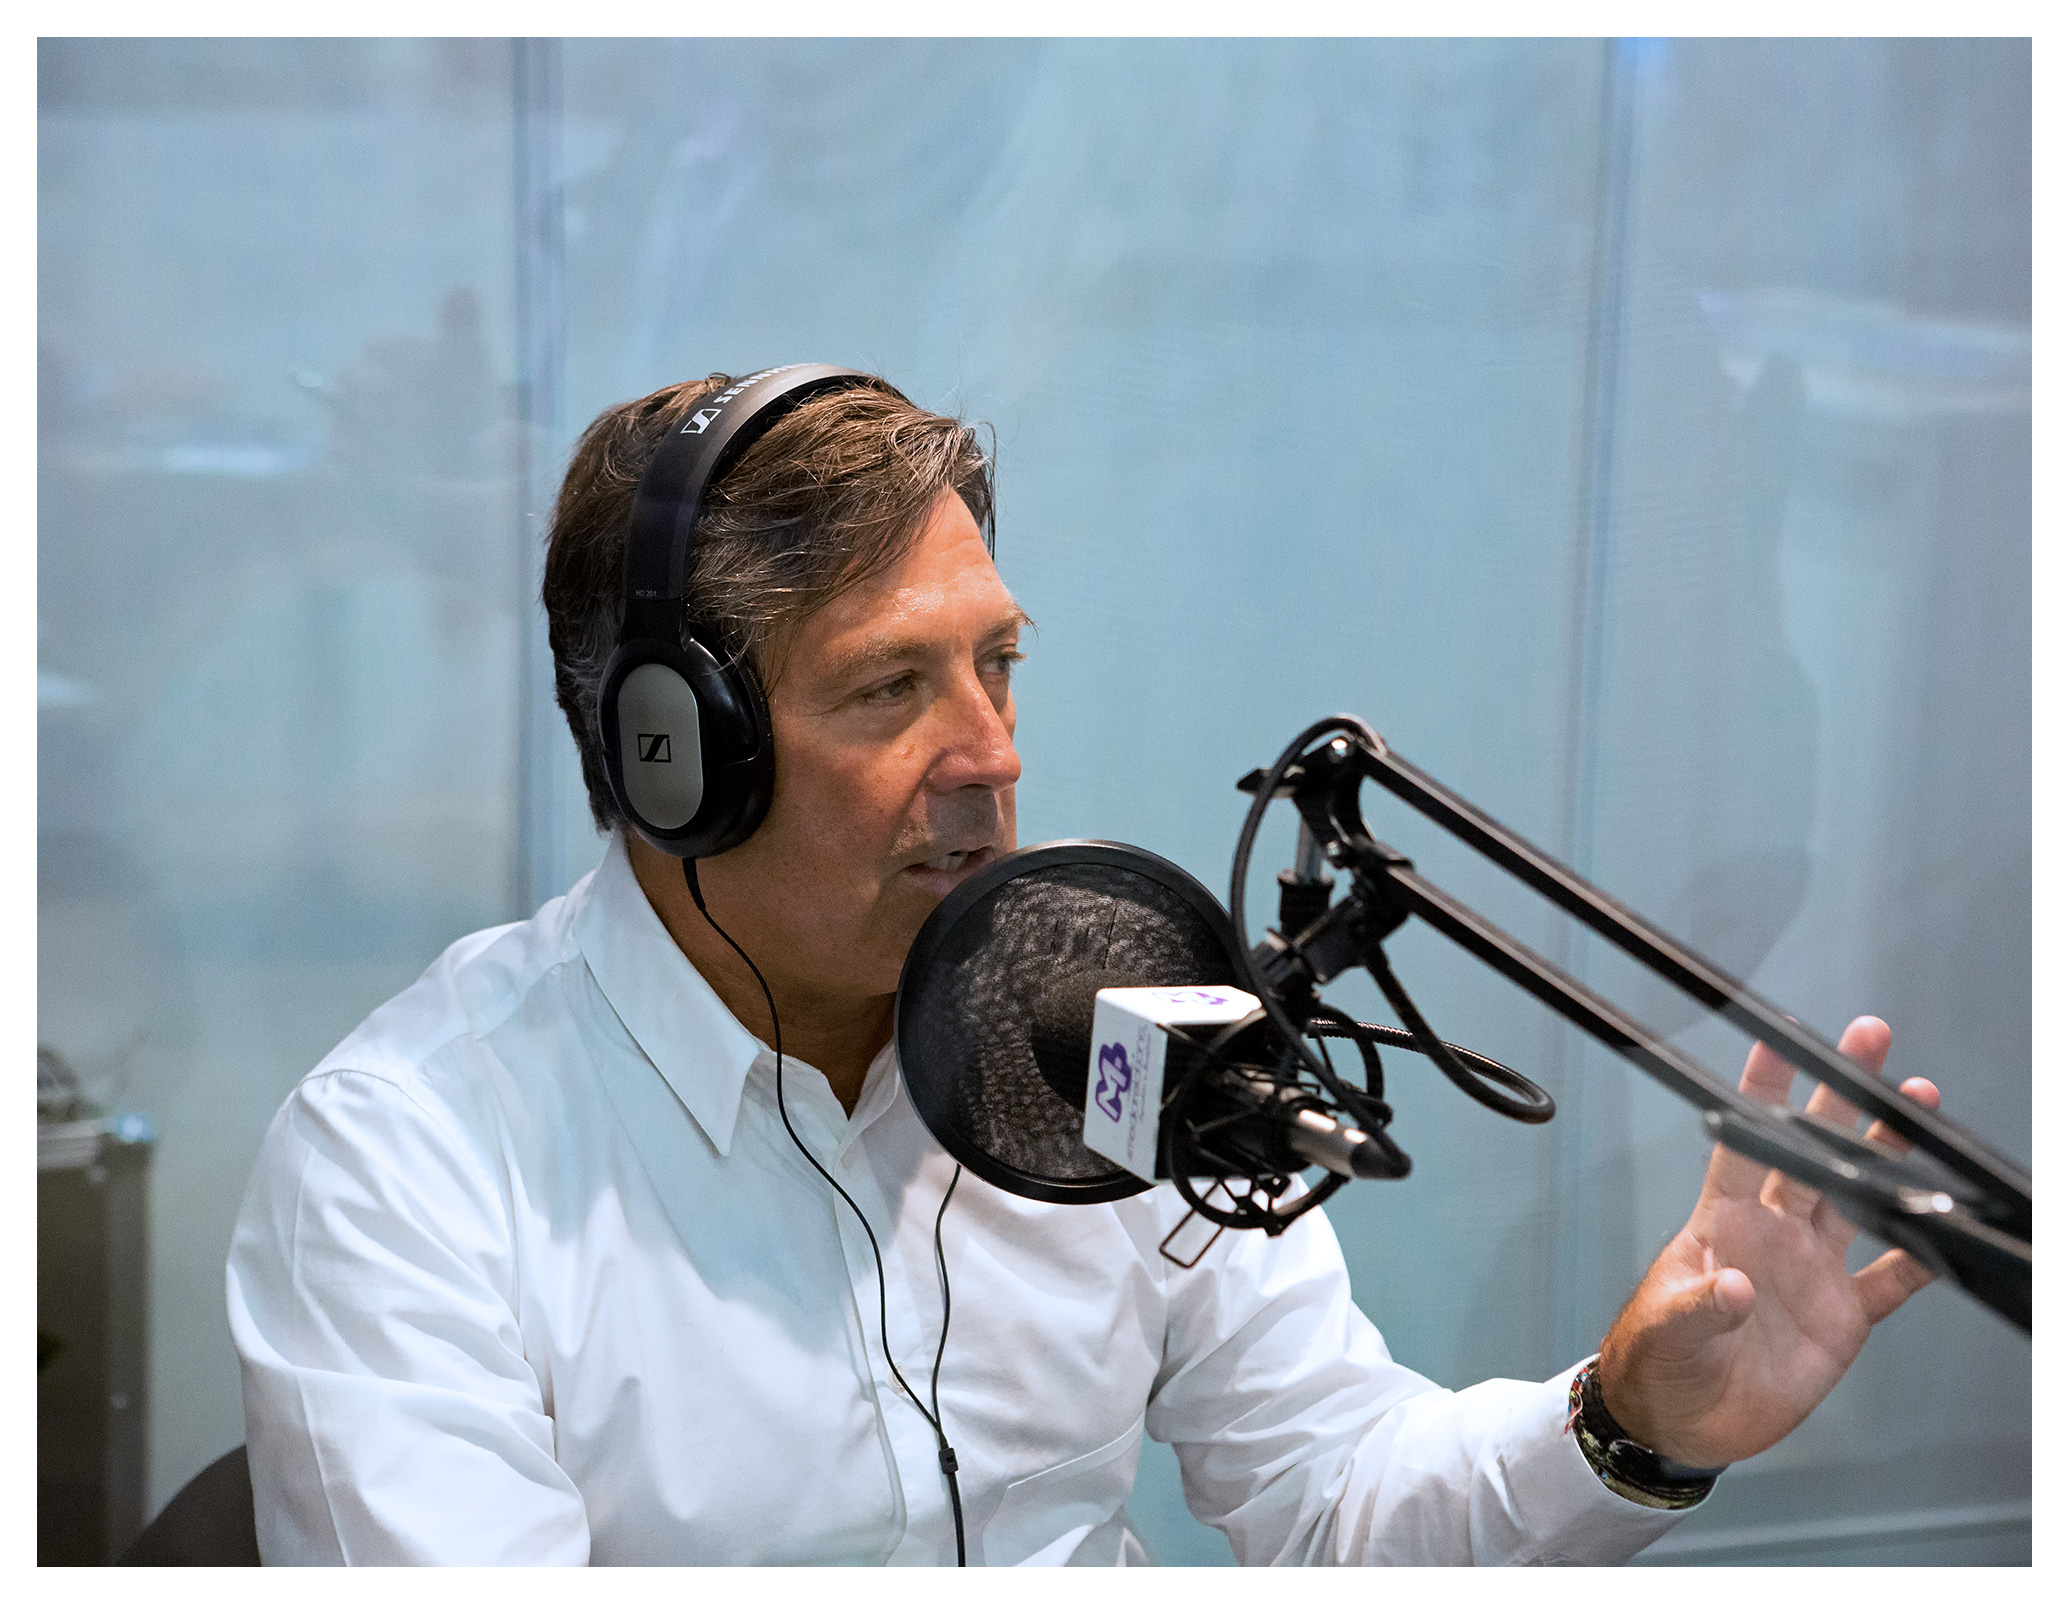 Editorial (portrait) photography: John Torode radio broadcast, World Travel Market 2017, ExCel London